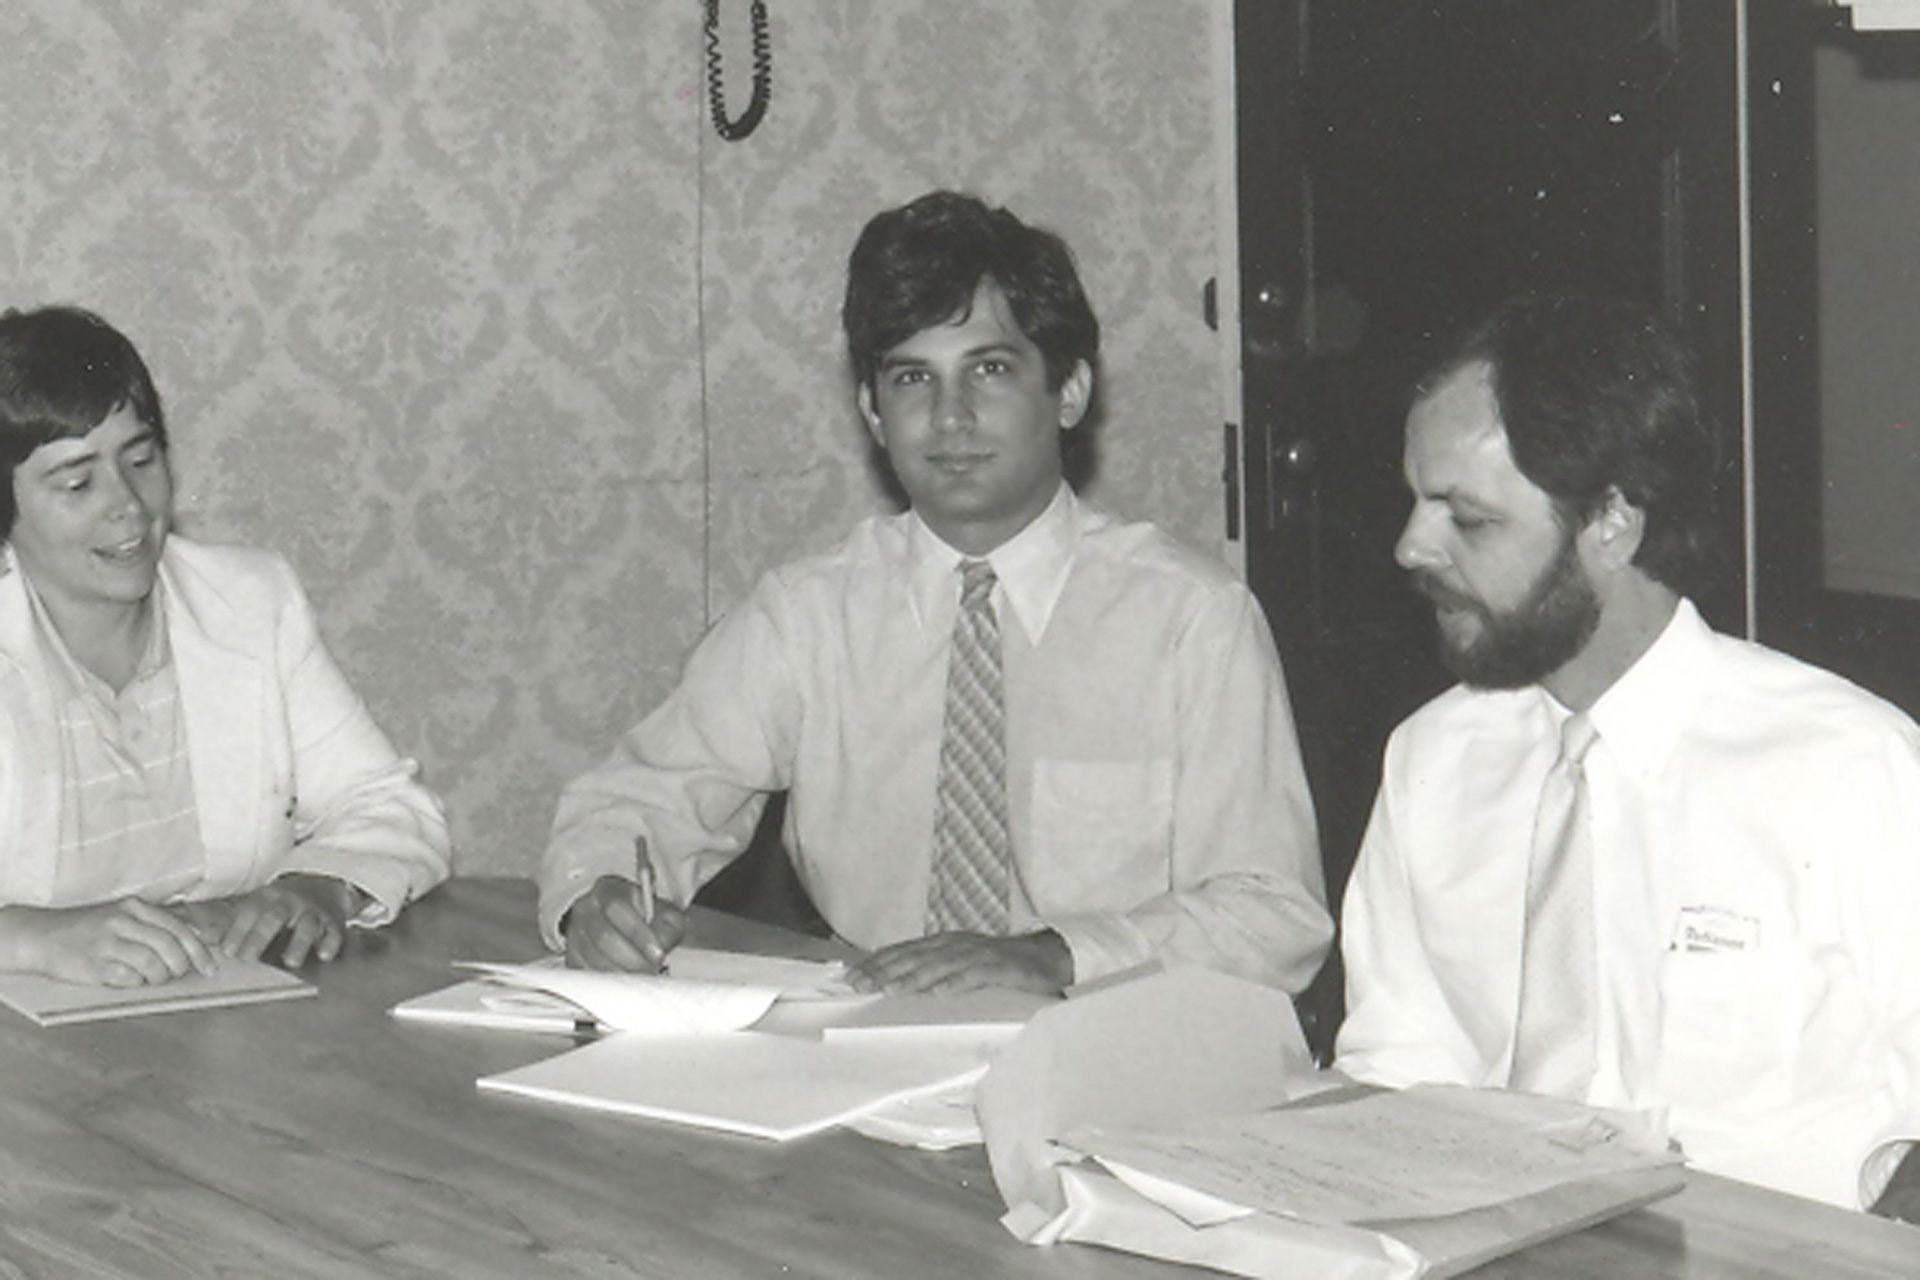 Three people making plans at a table